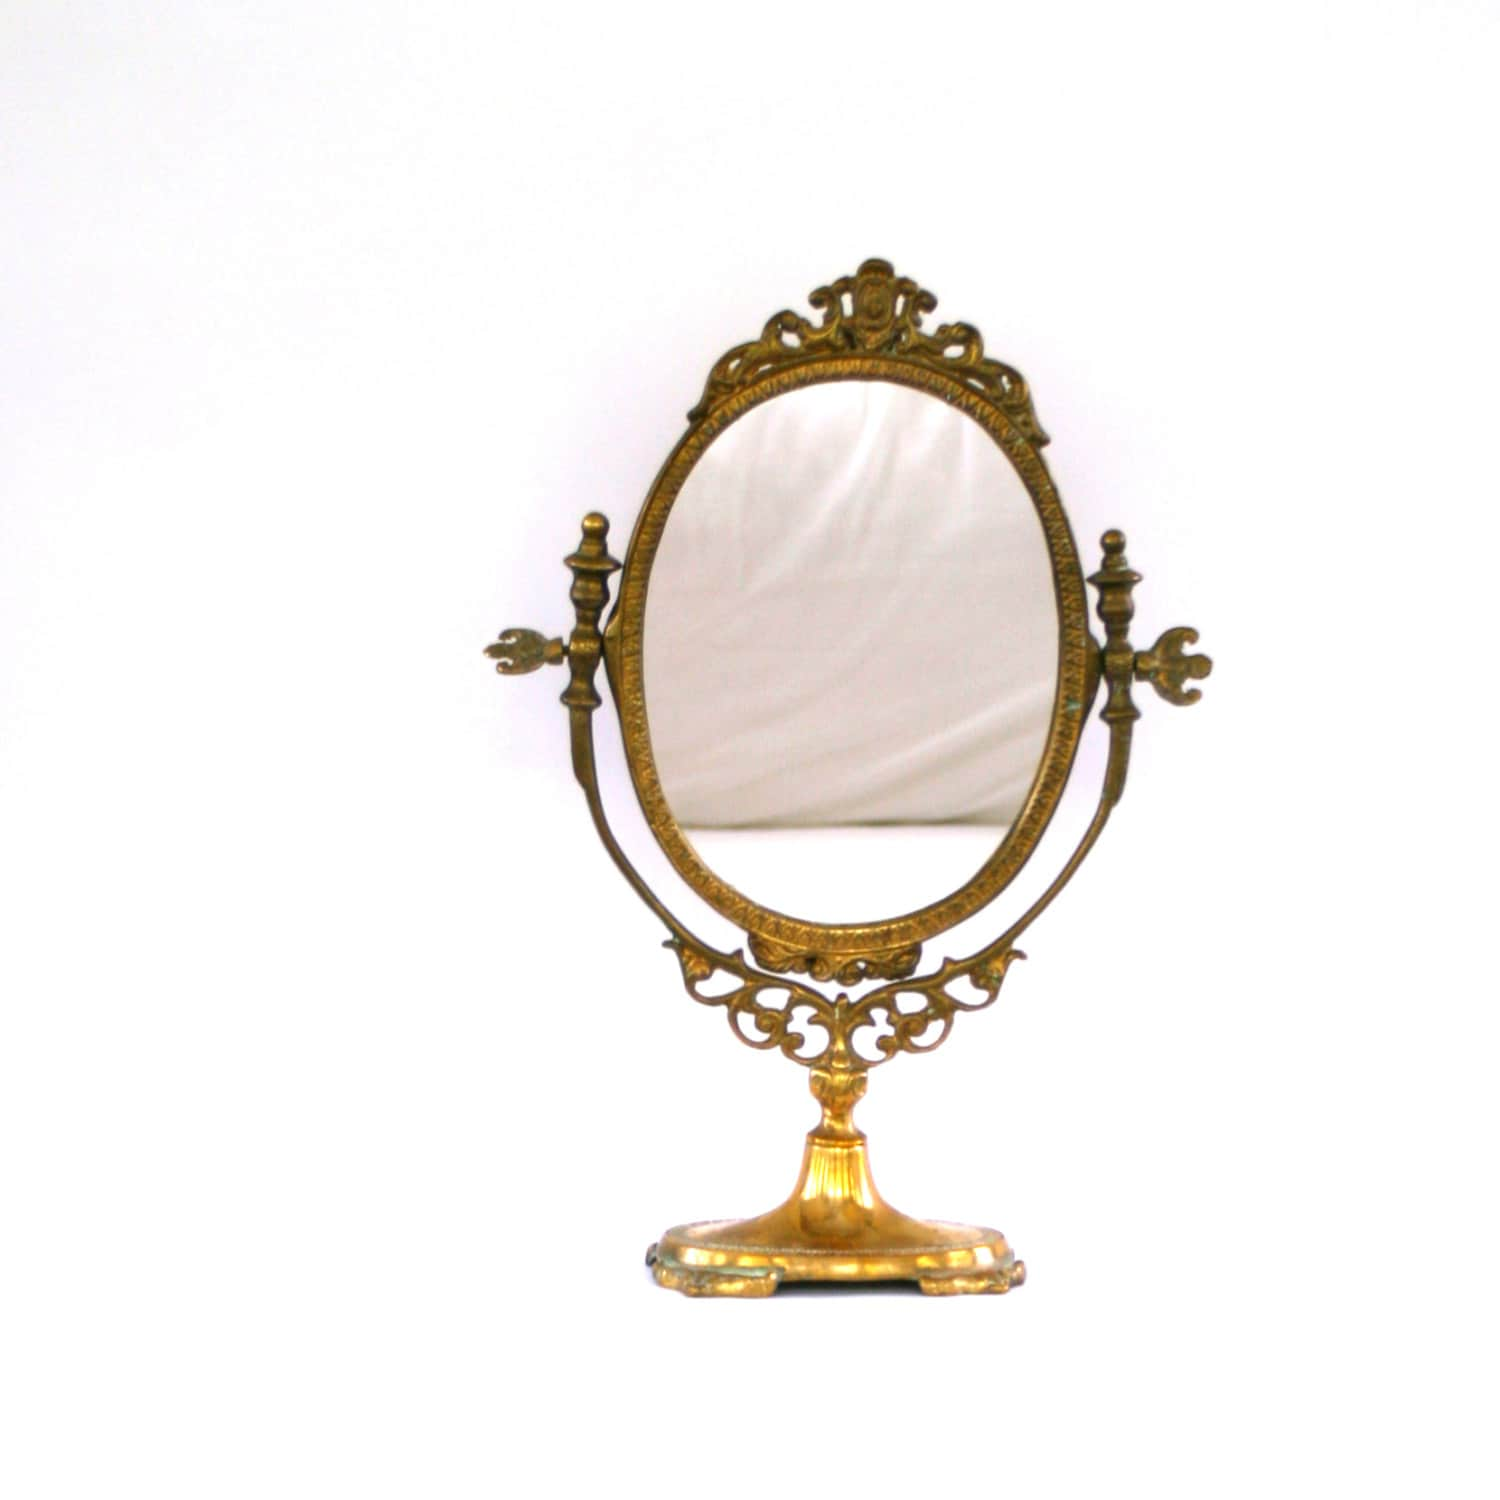 Antique Vanity Mirror with Stand. Makeup Ornate Mirror.